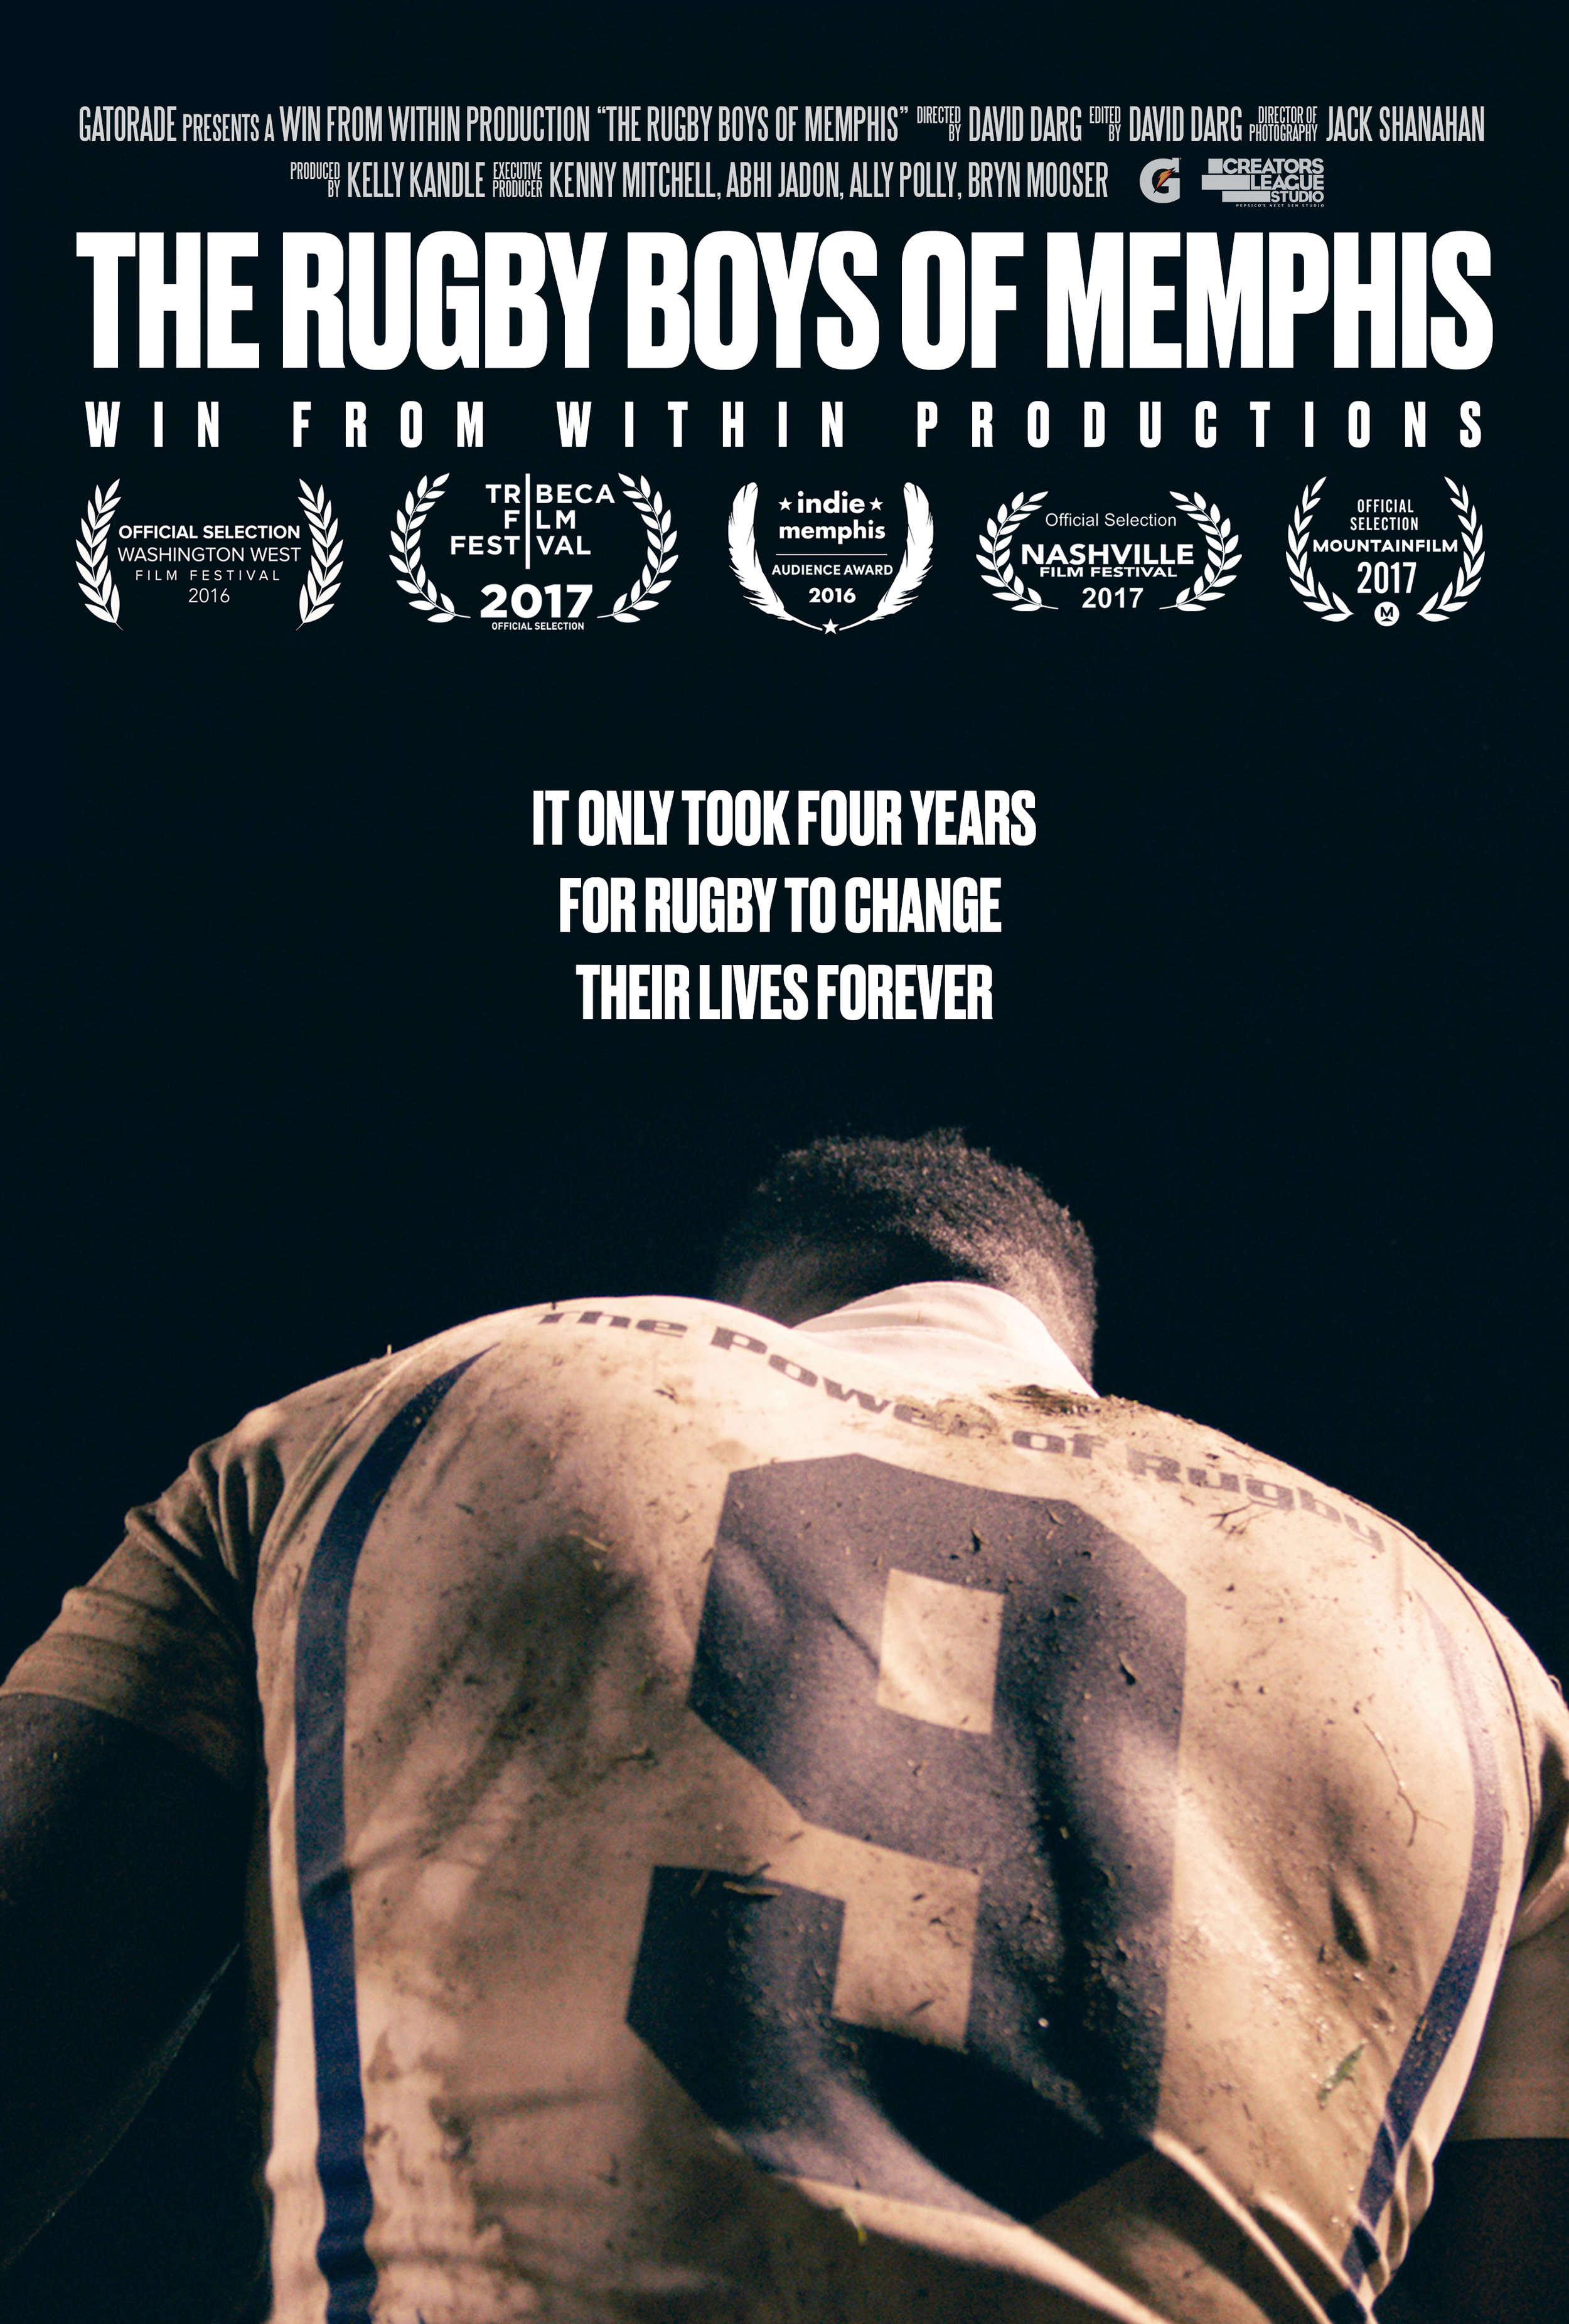 The Rugby Boys of Memphis | Tribeca Film Festival